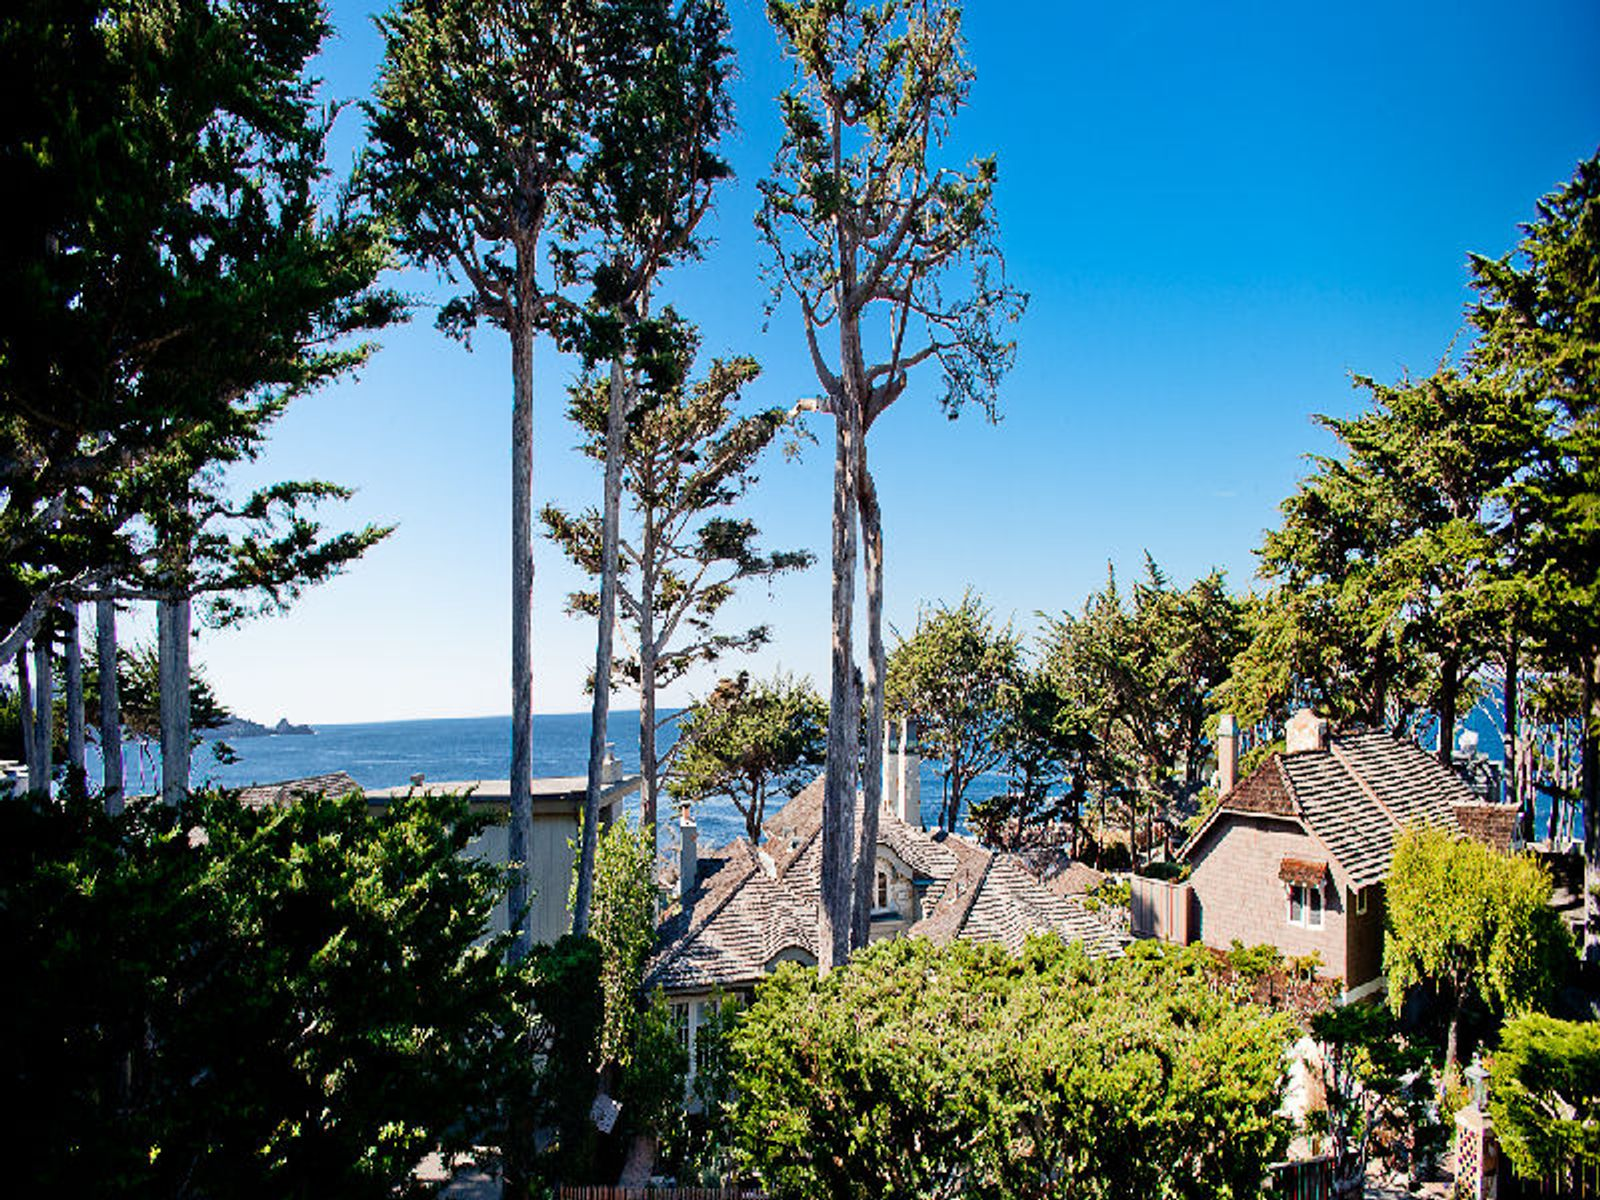 Carmel Point Contemporary, Carmel CA Single Family Home - Monterey Real Estate